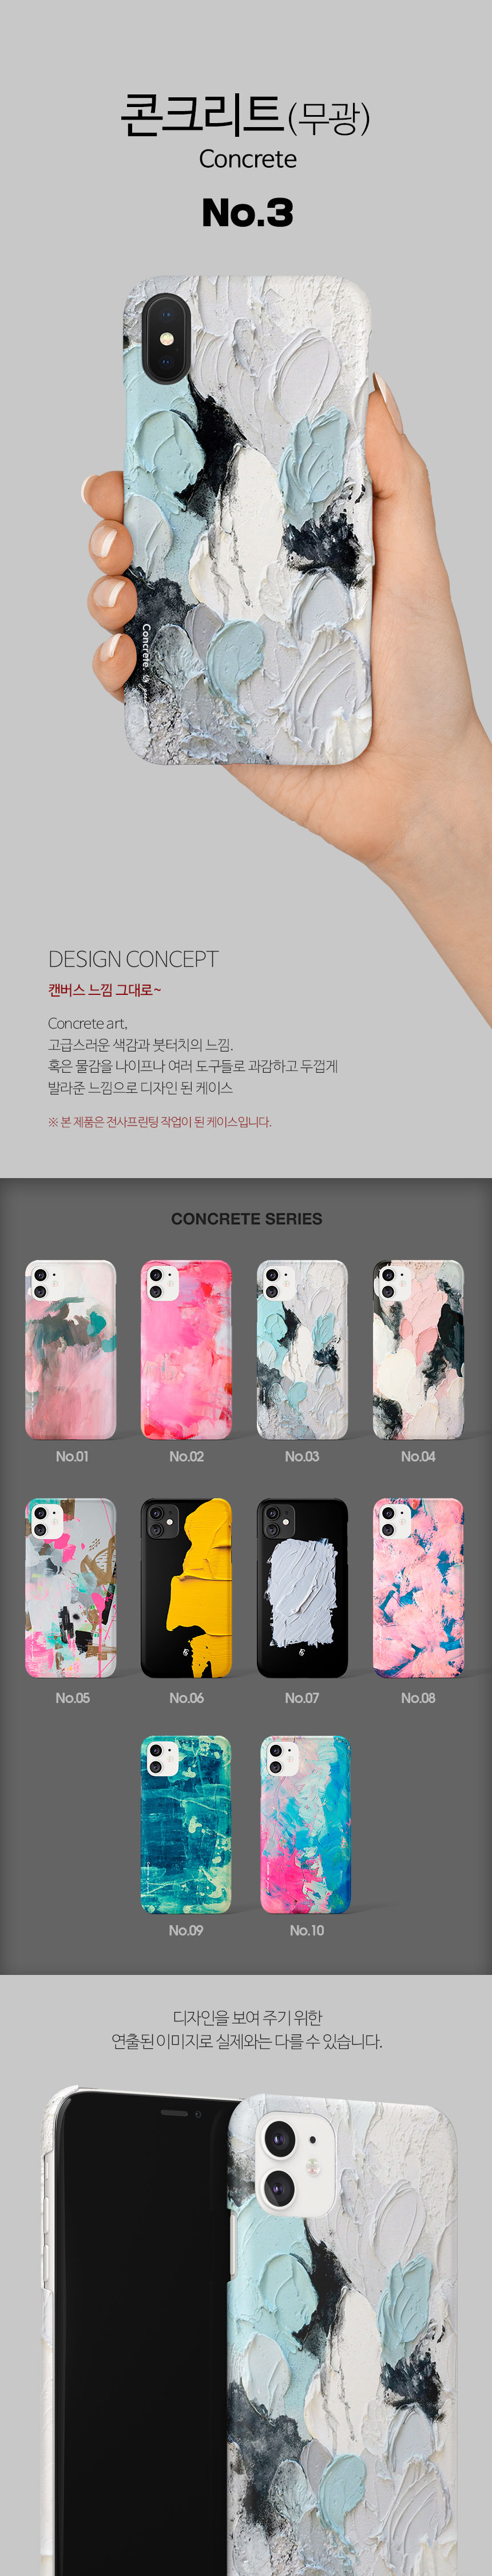 기키(GEEKY) phone case Concrete No.03